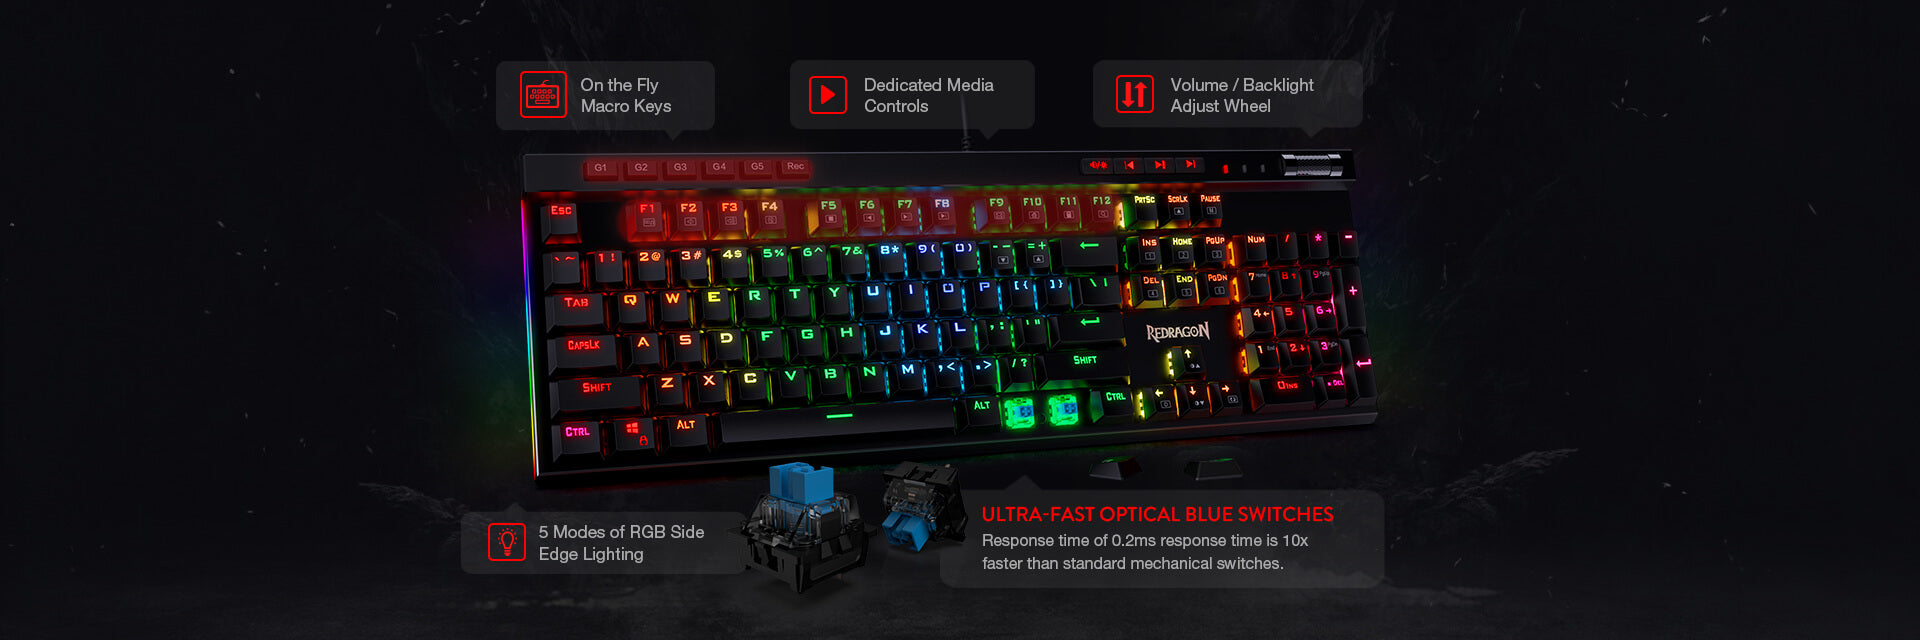 redragon k580 pro optical keybaord